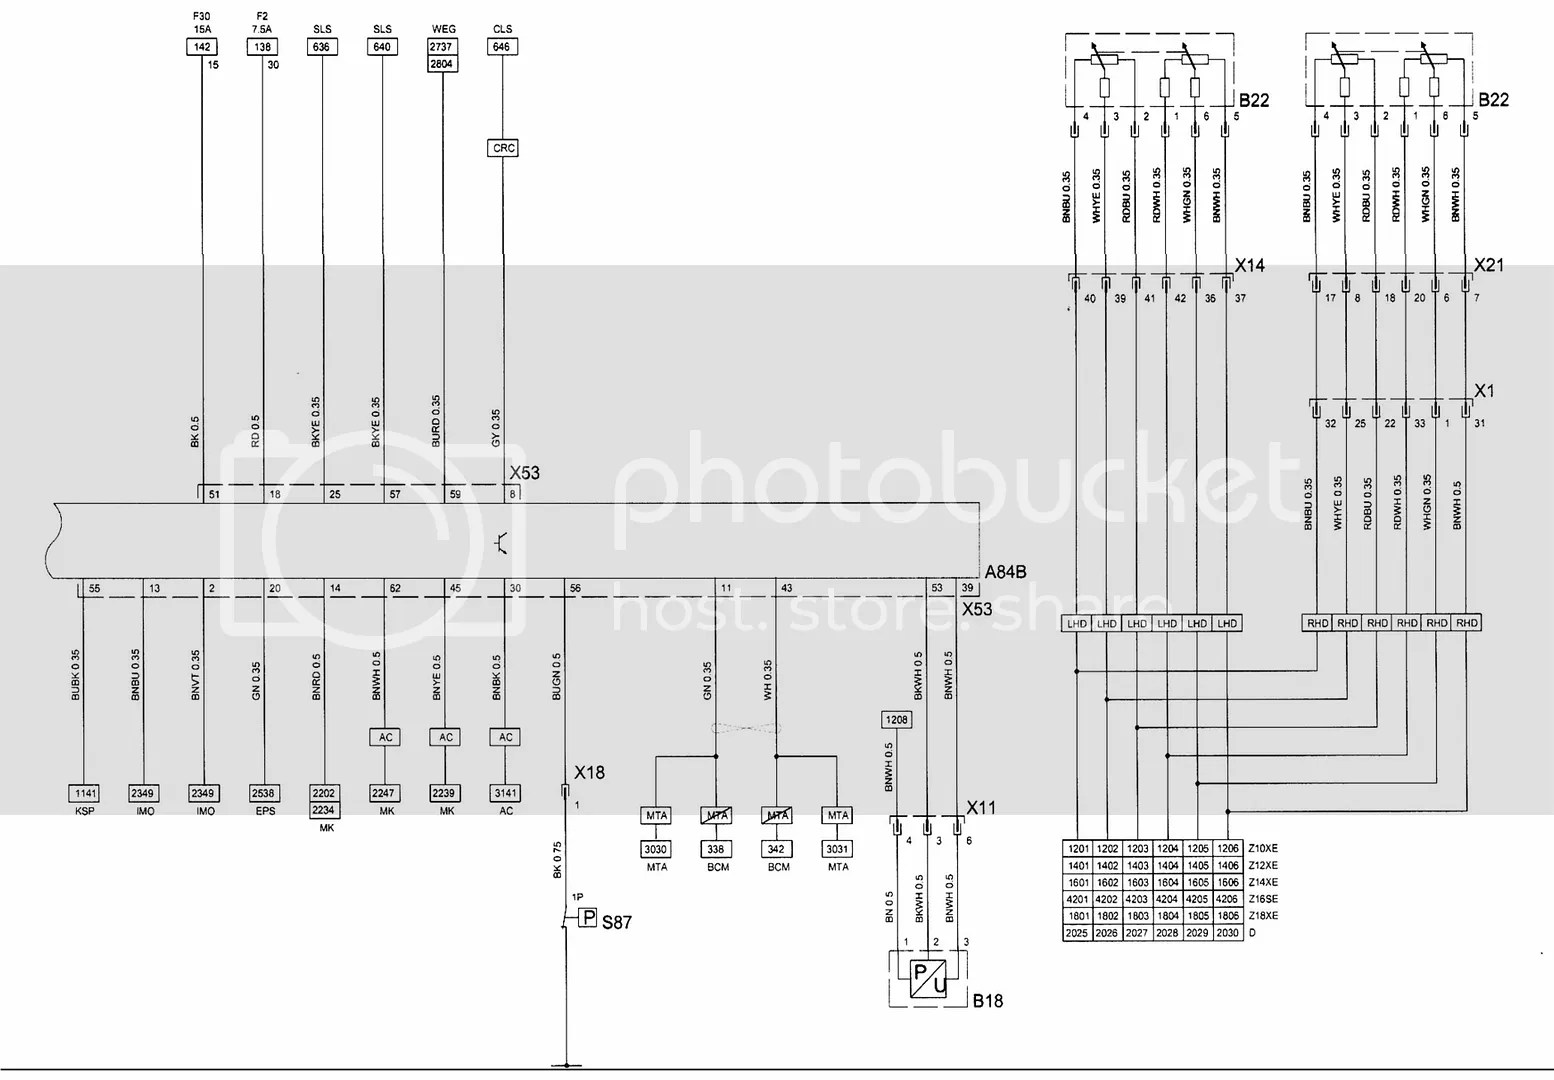 Opel Vectra C Fuse Box Diagram | Wiring Liry on